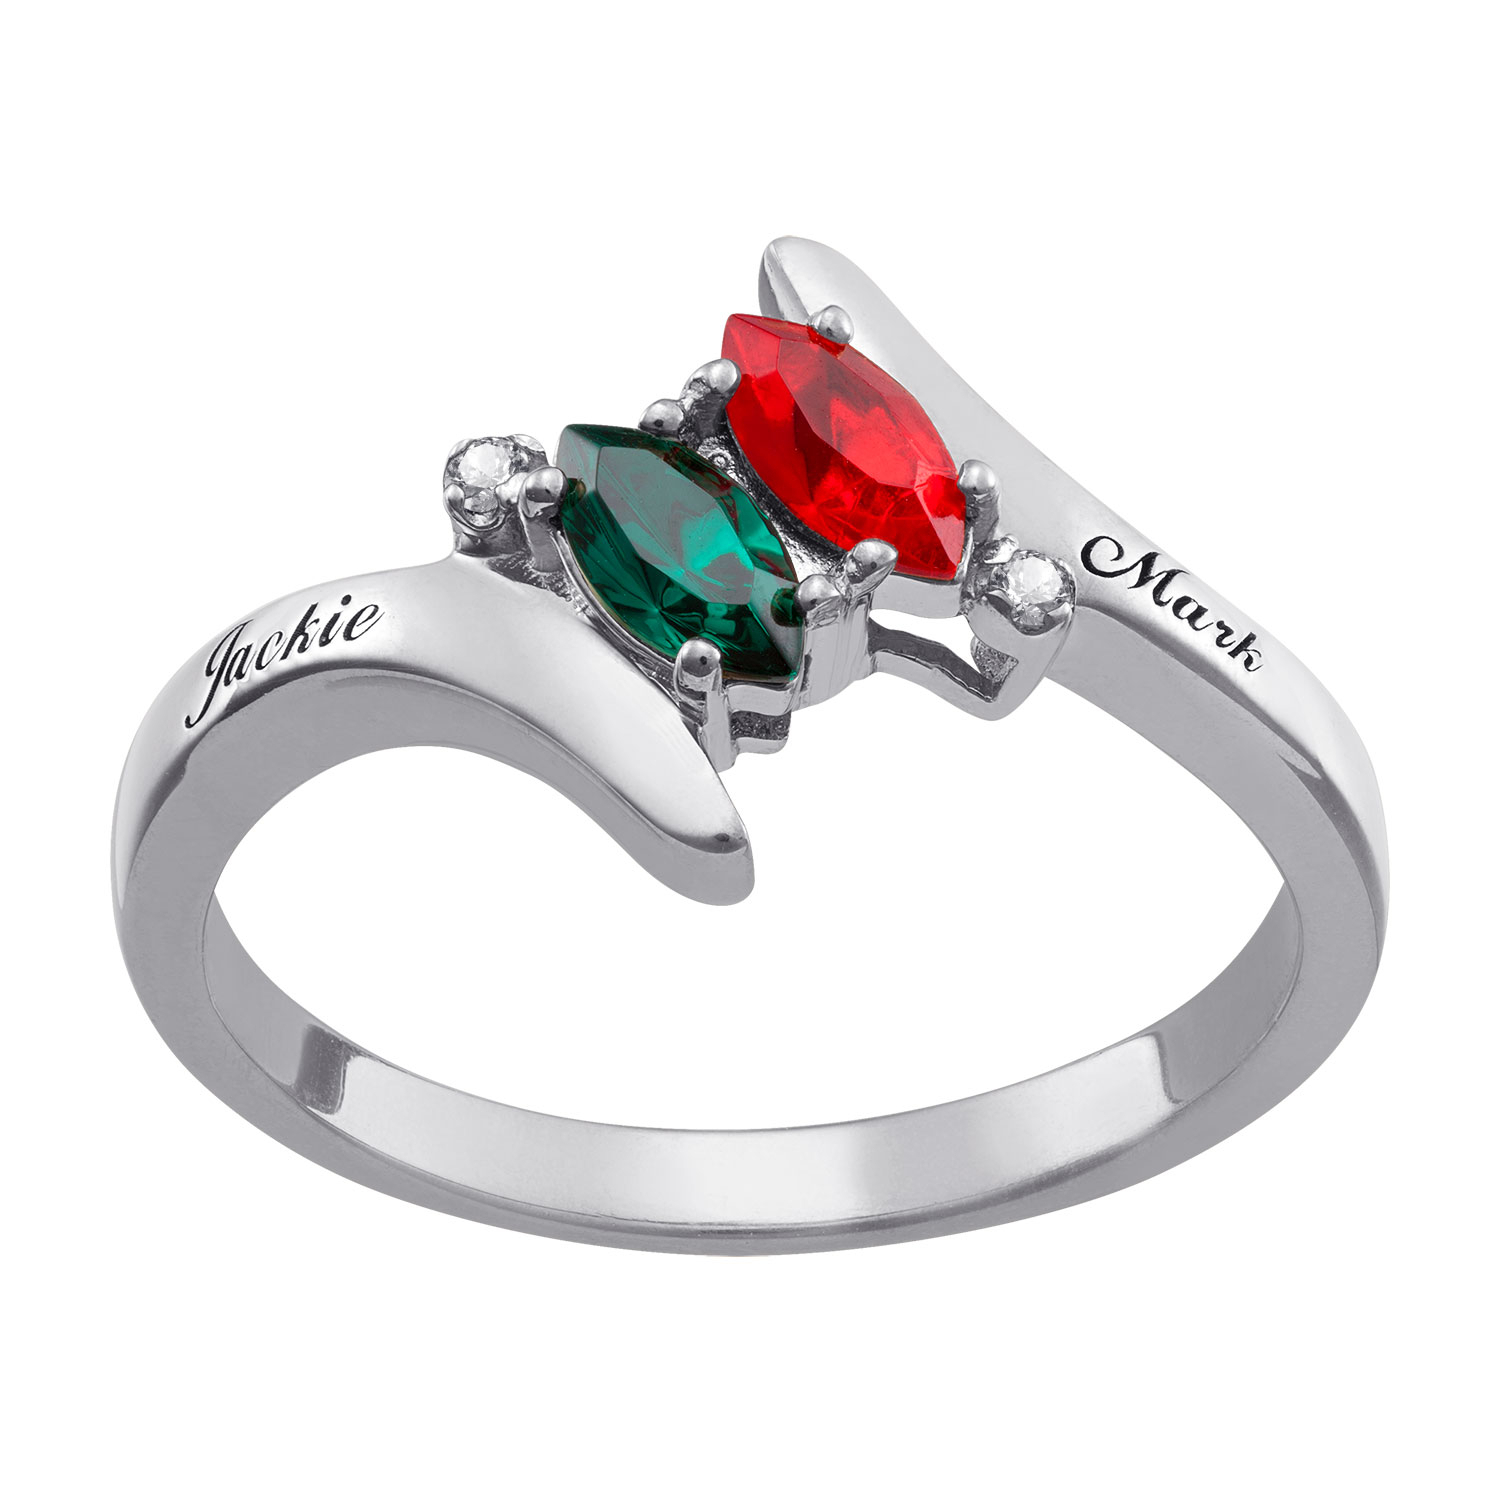 Sterling Silver Couple's Marquise Birthstone Name Ring With Diamond Accent Regarding Most Up To Date Diamond Accent Anniversary Bands In Sterling Silver (Gallery 22 of 25)